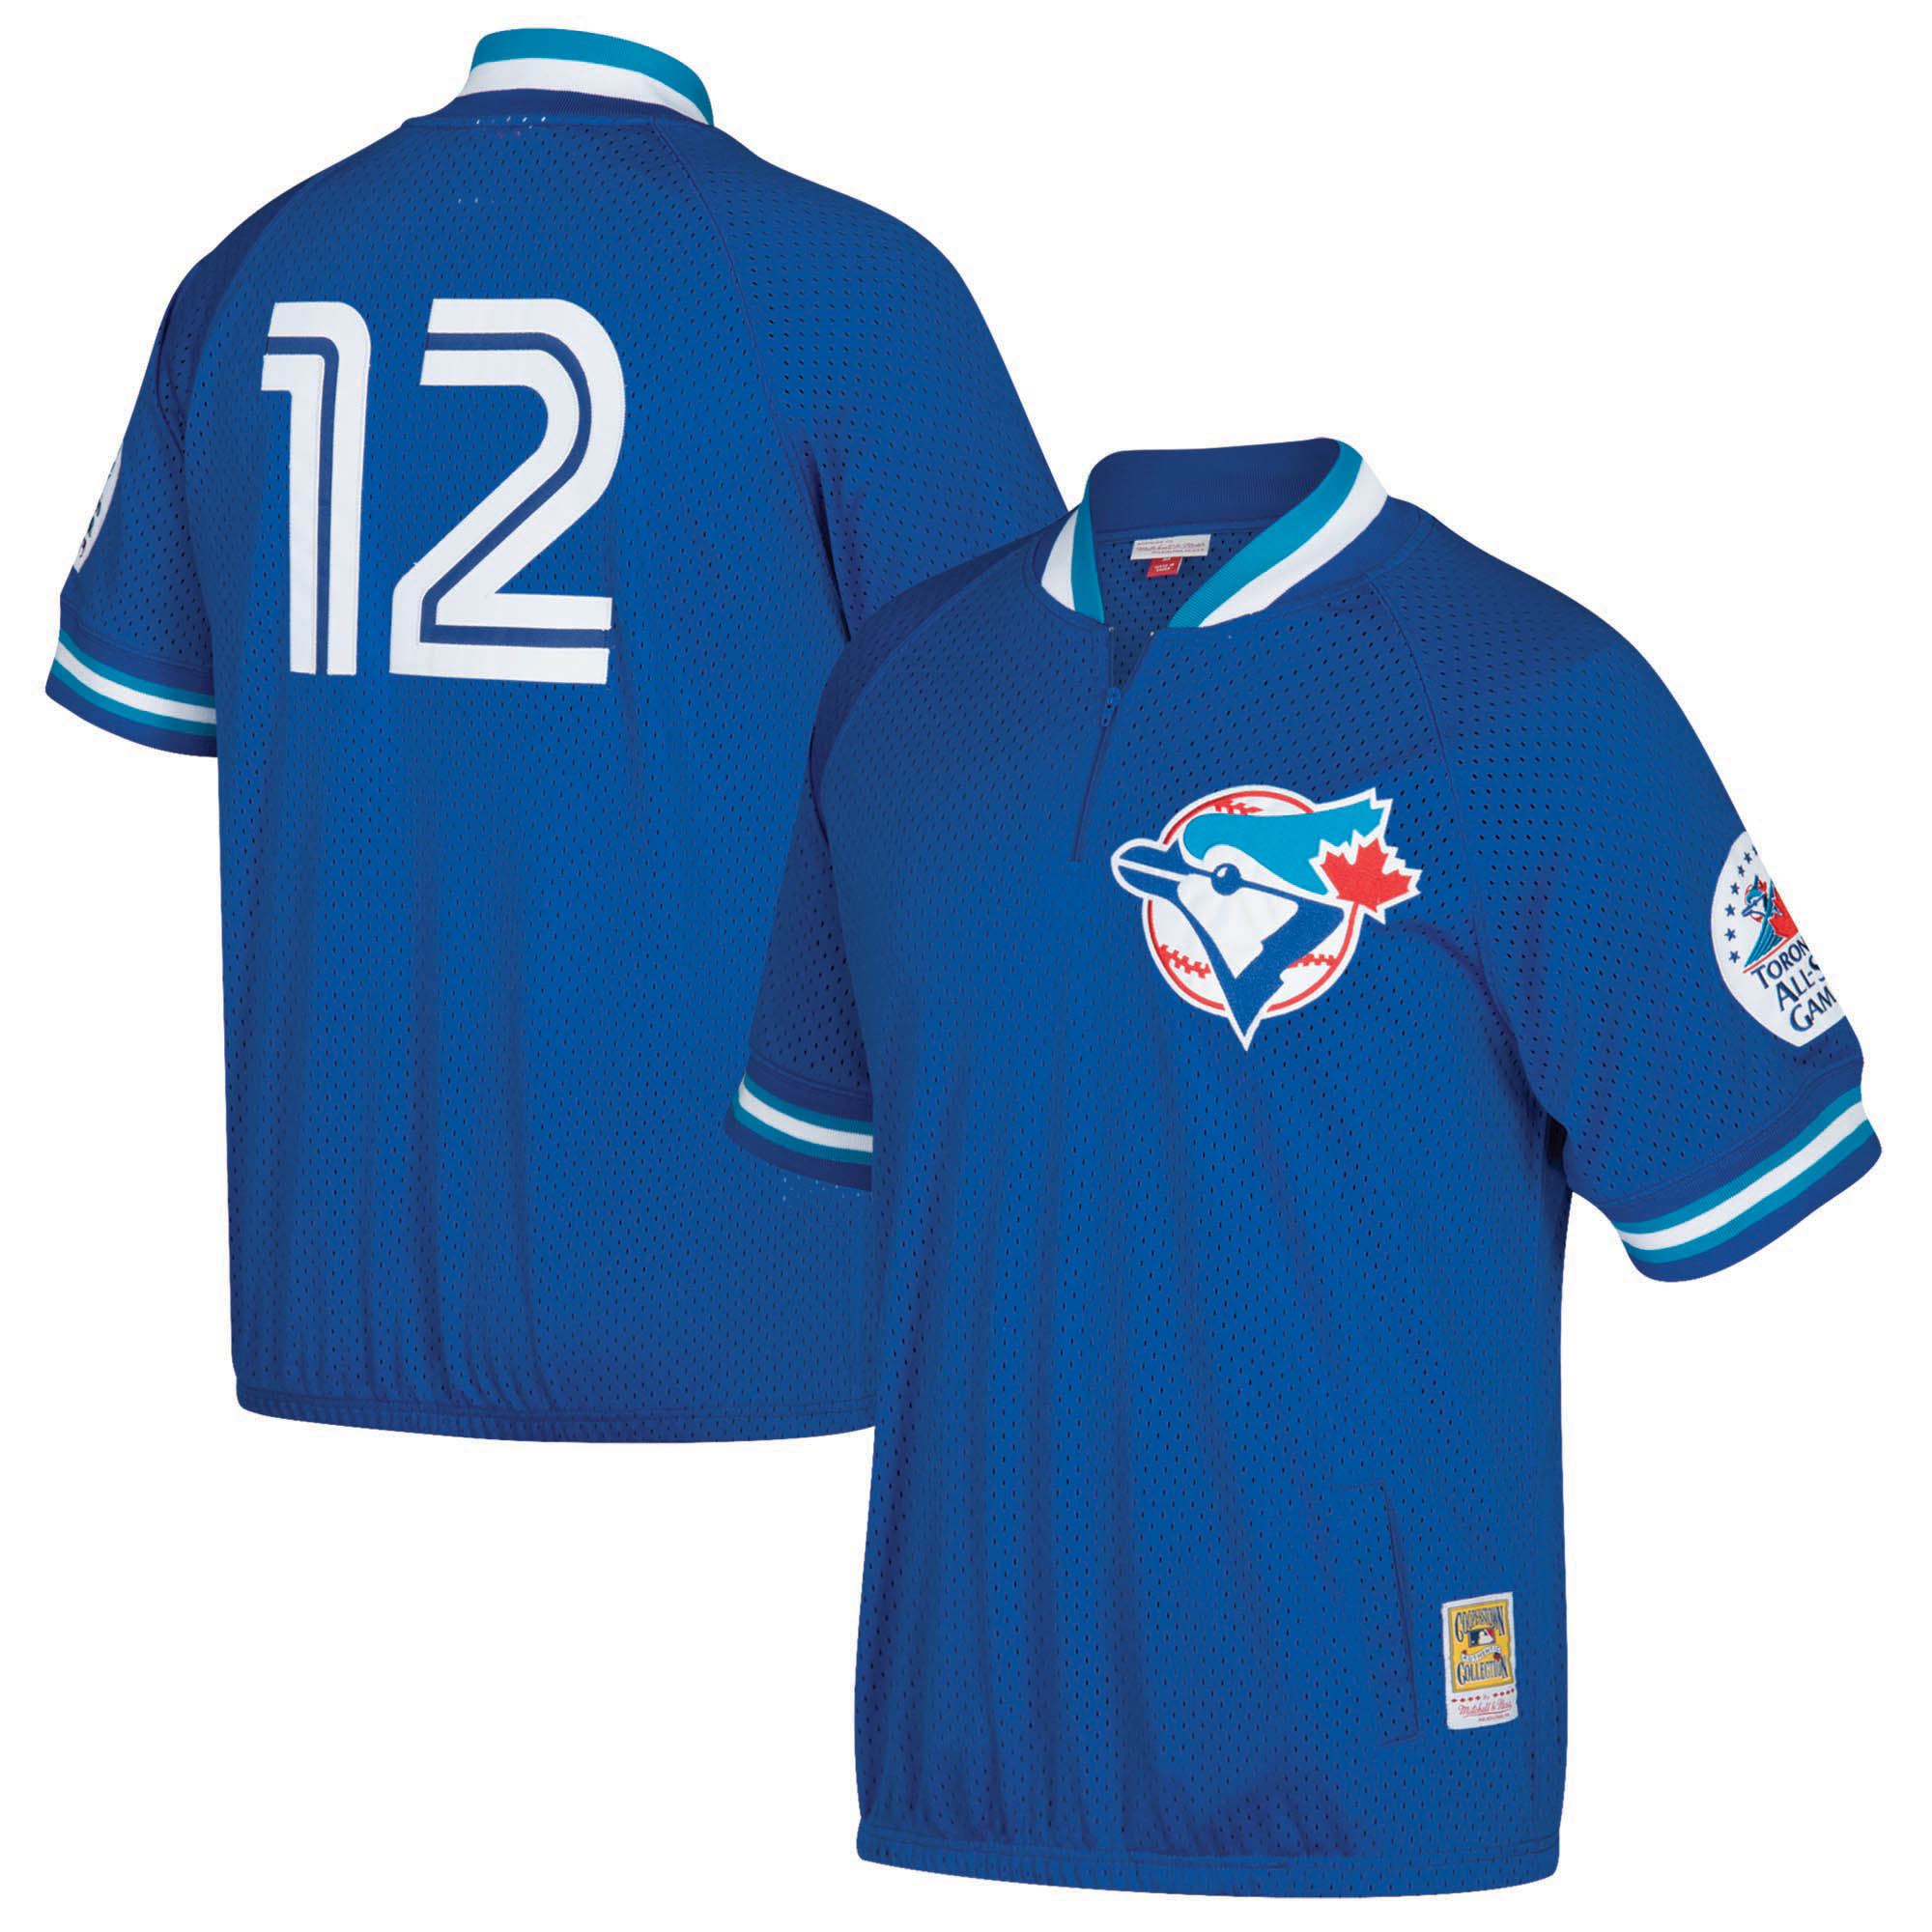 Roberto Alomar Toronto Blue Jays Mitchell & Ness Cooperstown Collection Mesh Batting Practice Quarter-Zip Jersey - Royal